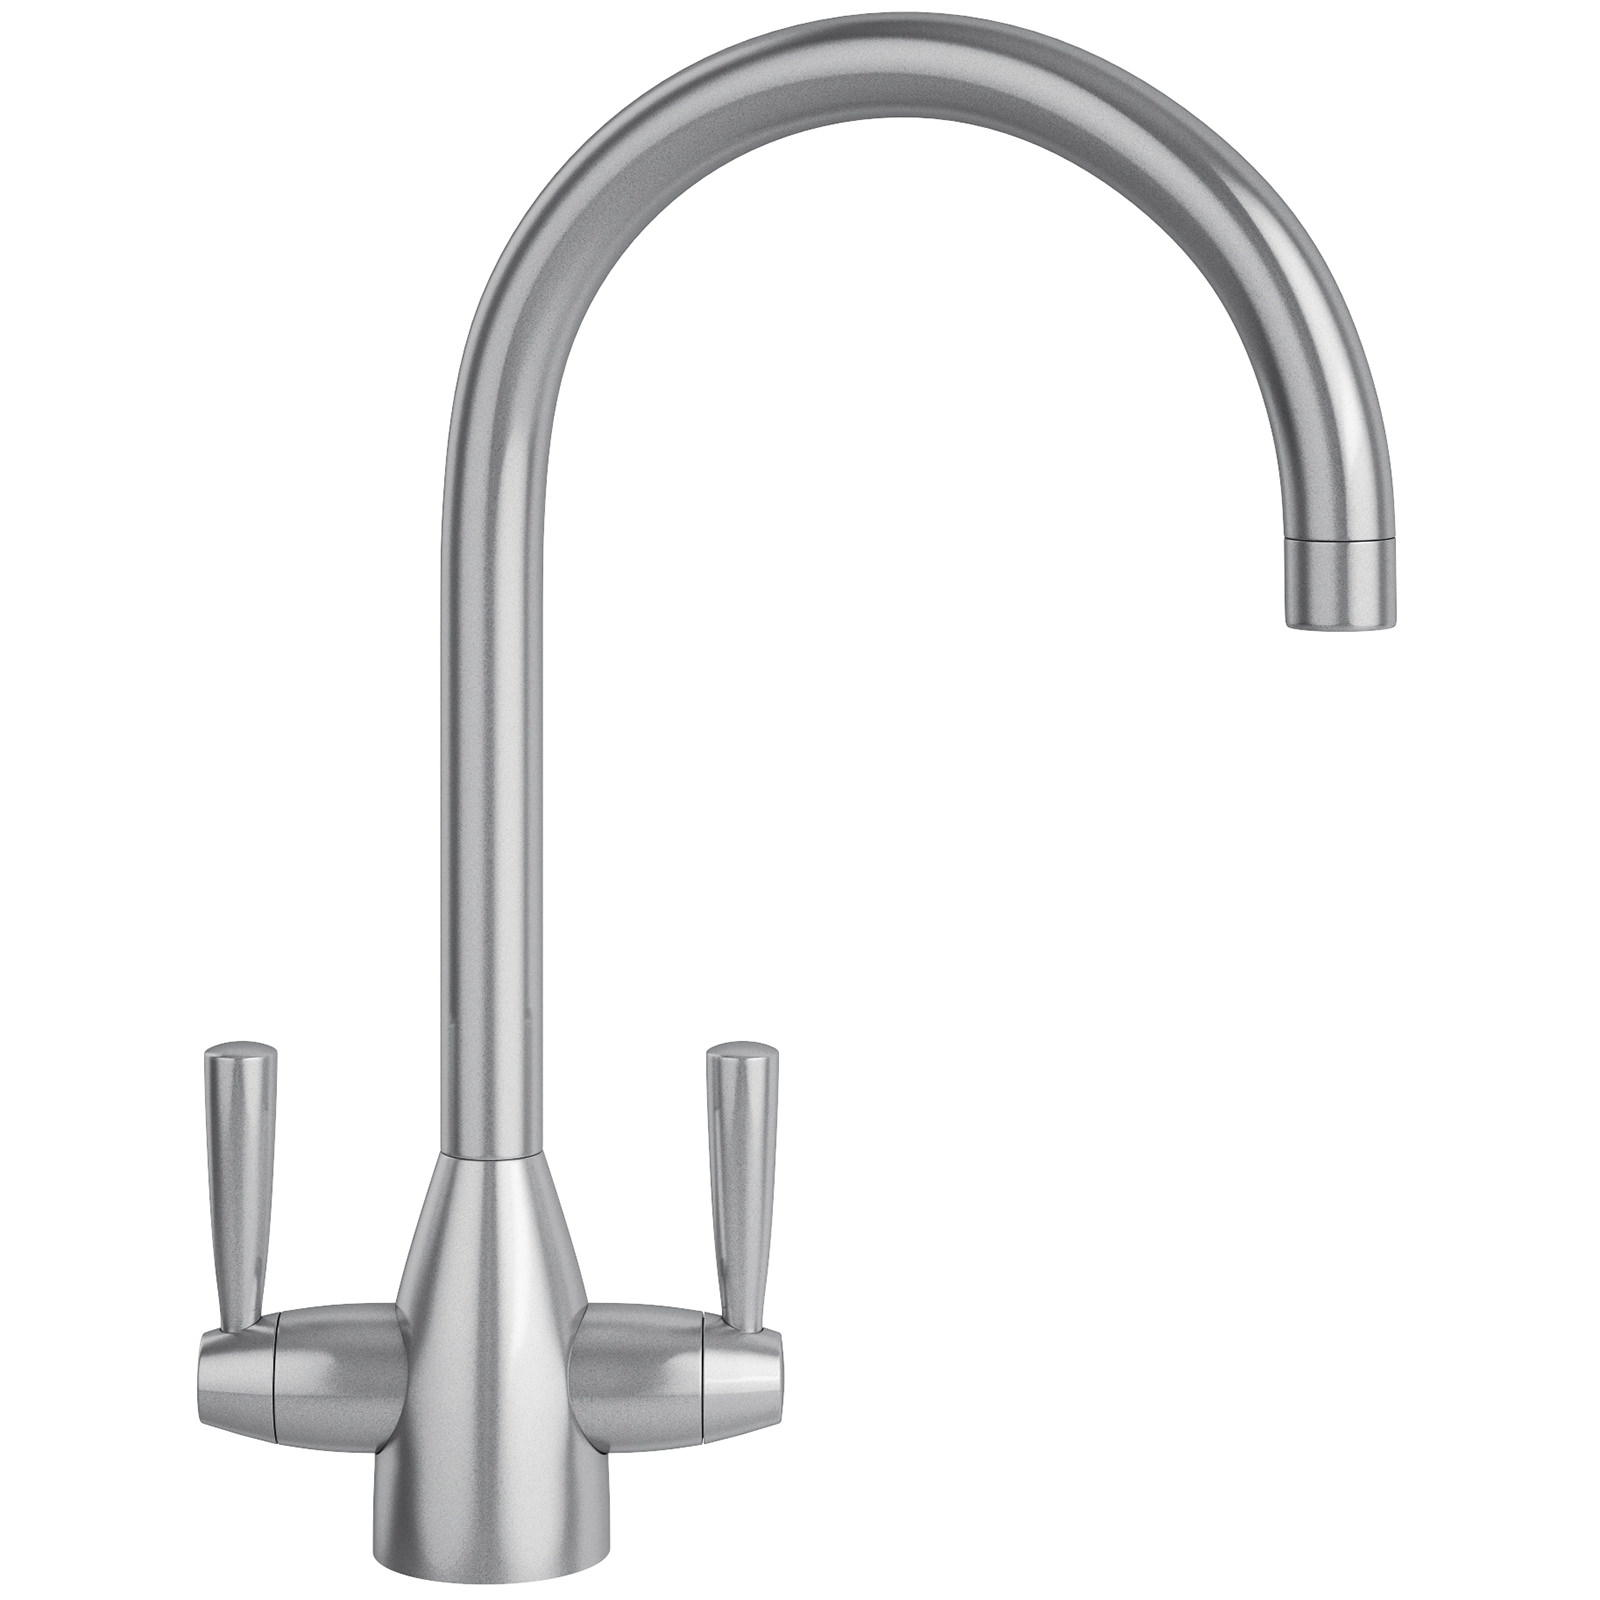 Franke Sink Mixer Taps : supplies taps kitchen mixer taps franke valais kitchen sink mixer tap ...